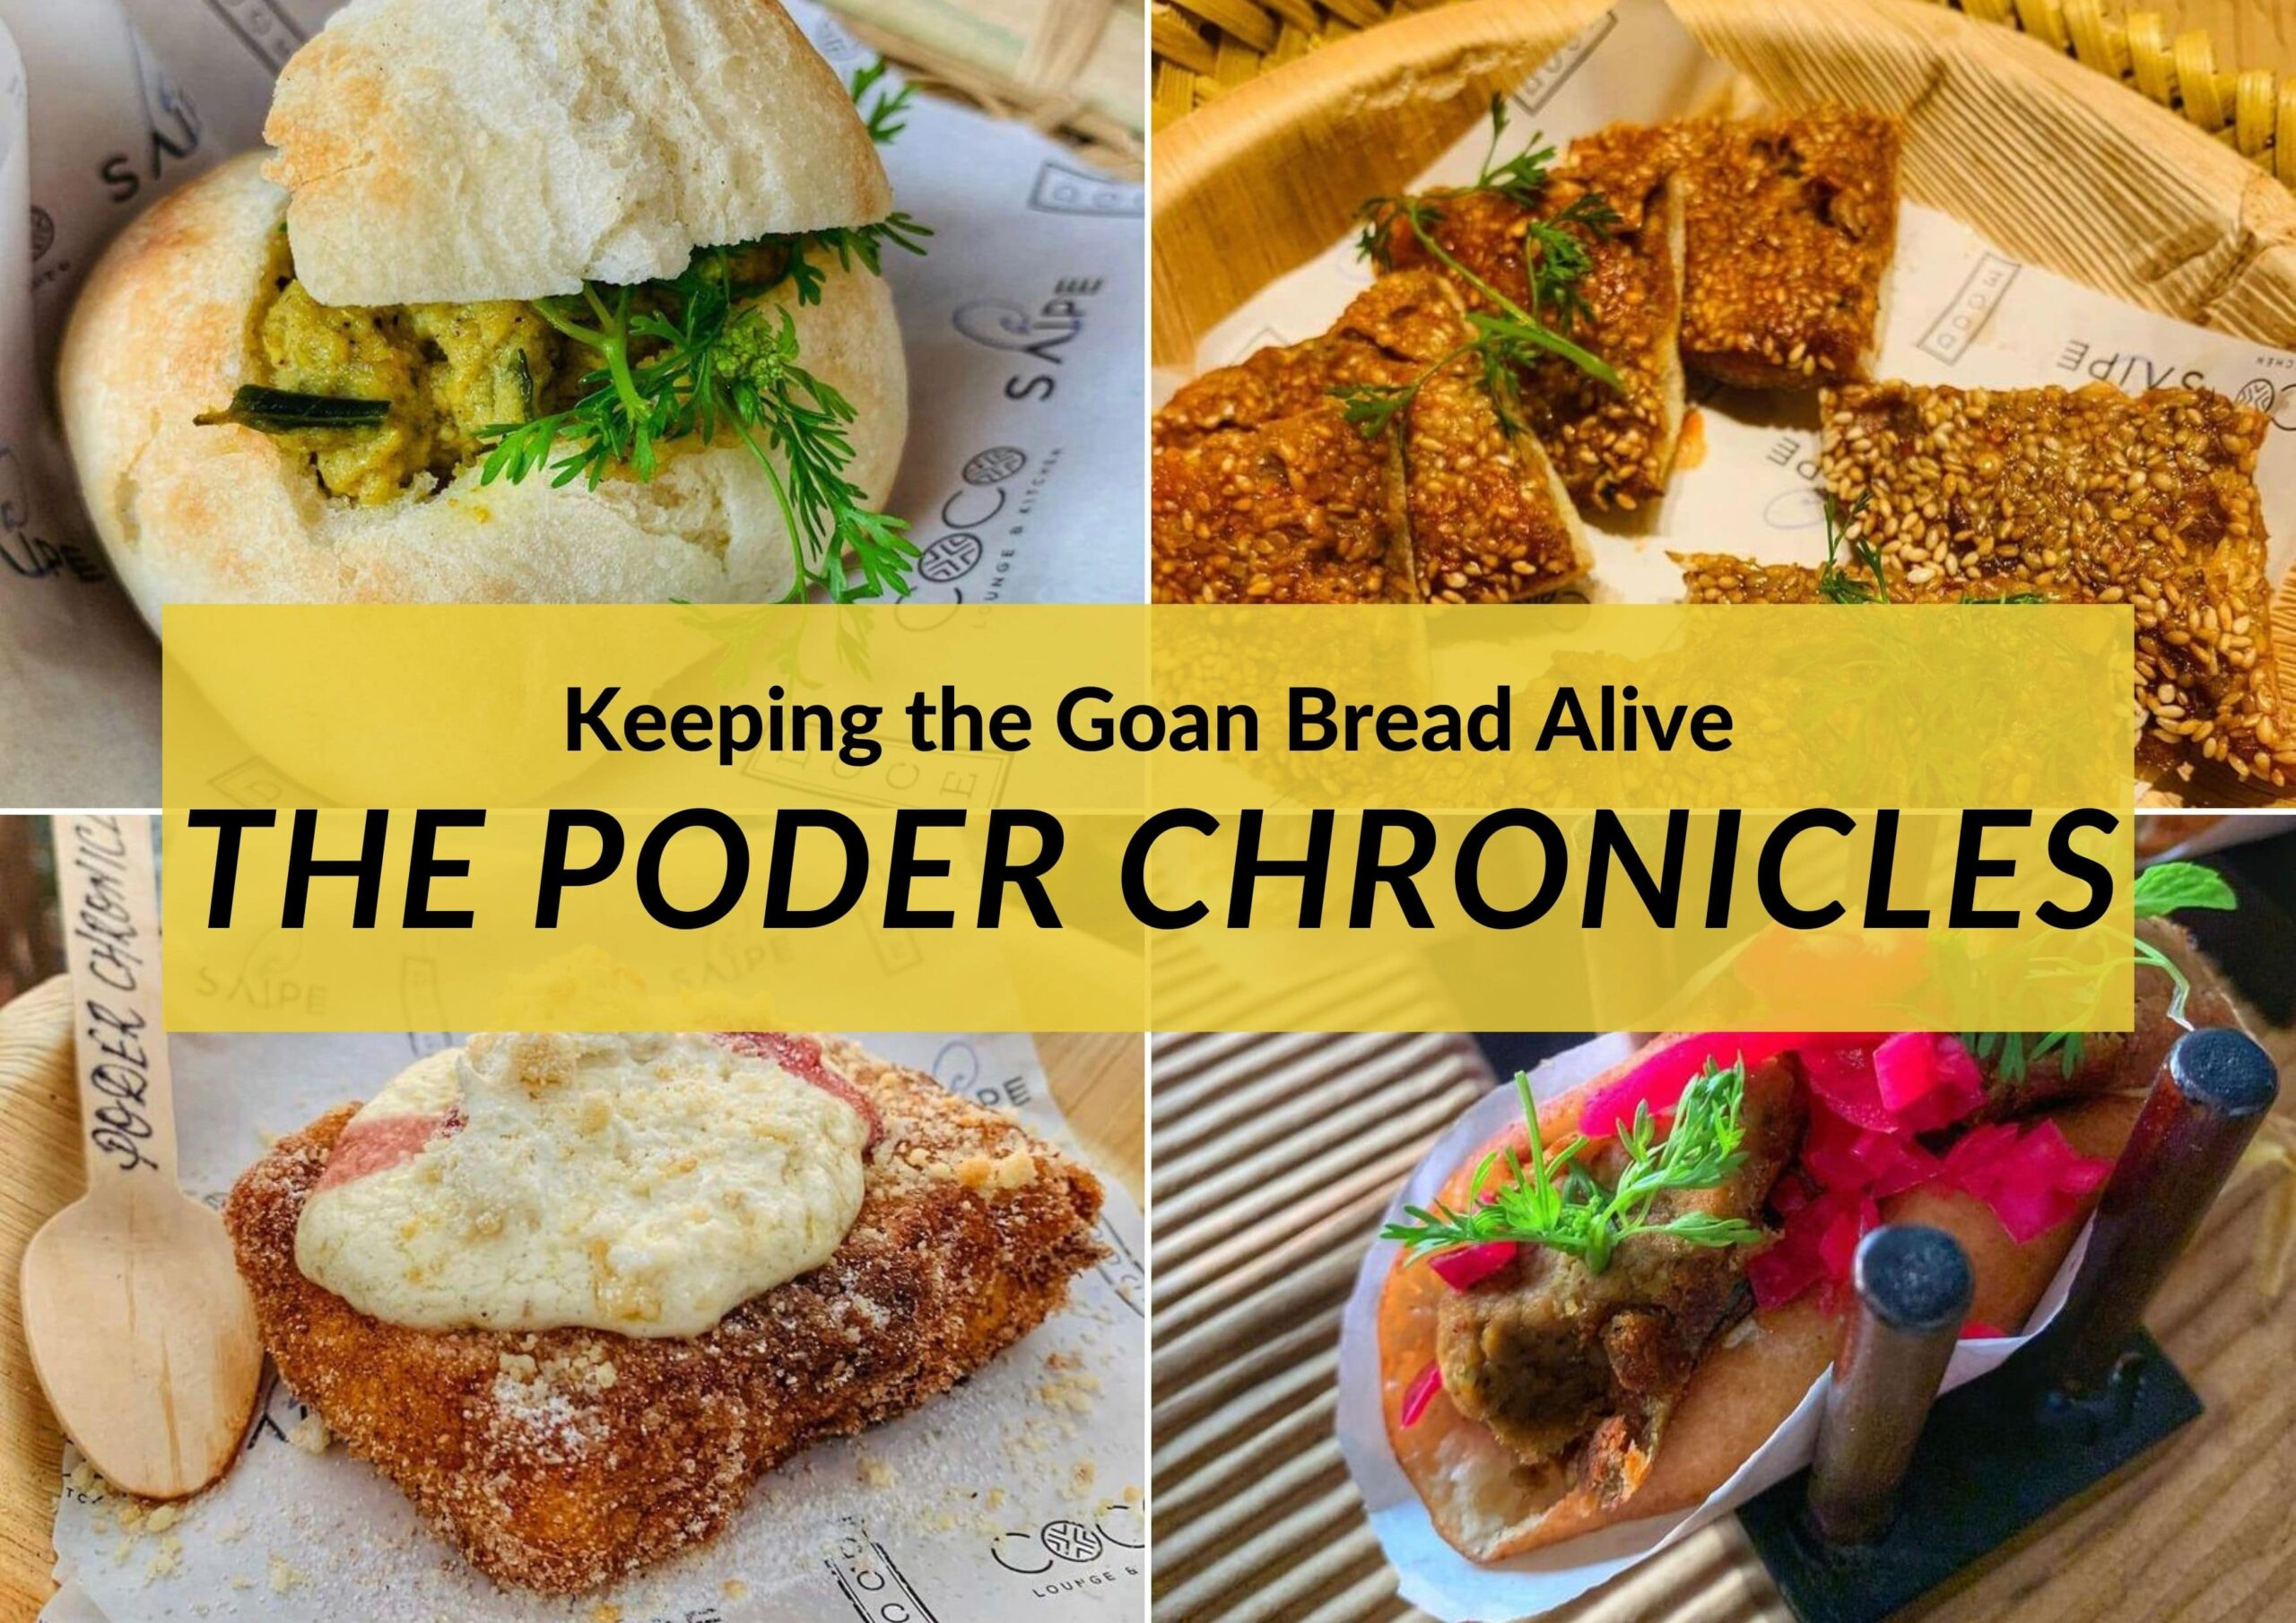 Keeping the Goan Bread Alive: The Poder Chronicles